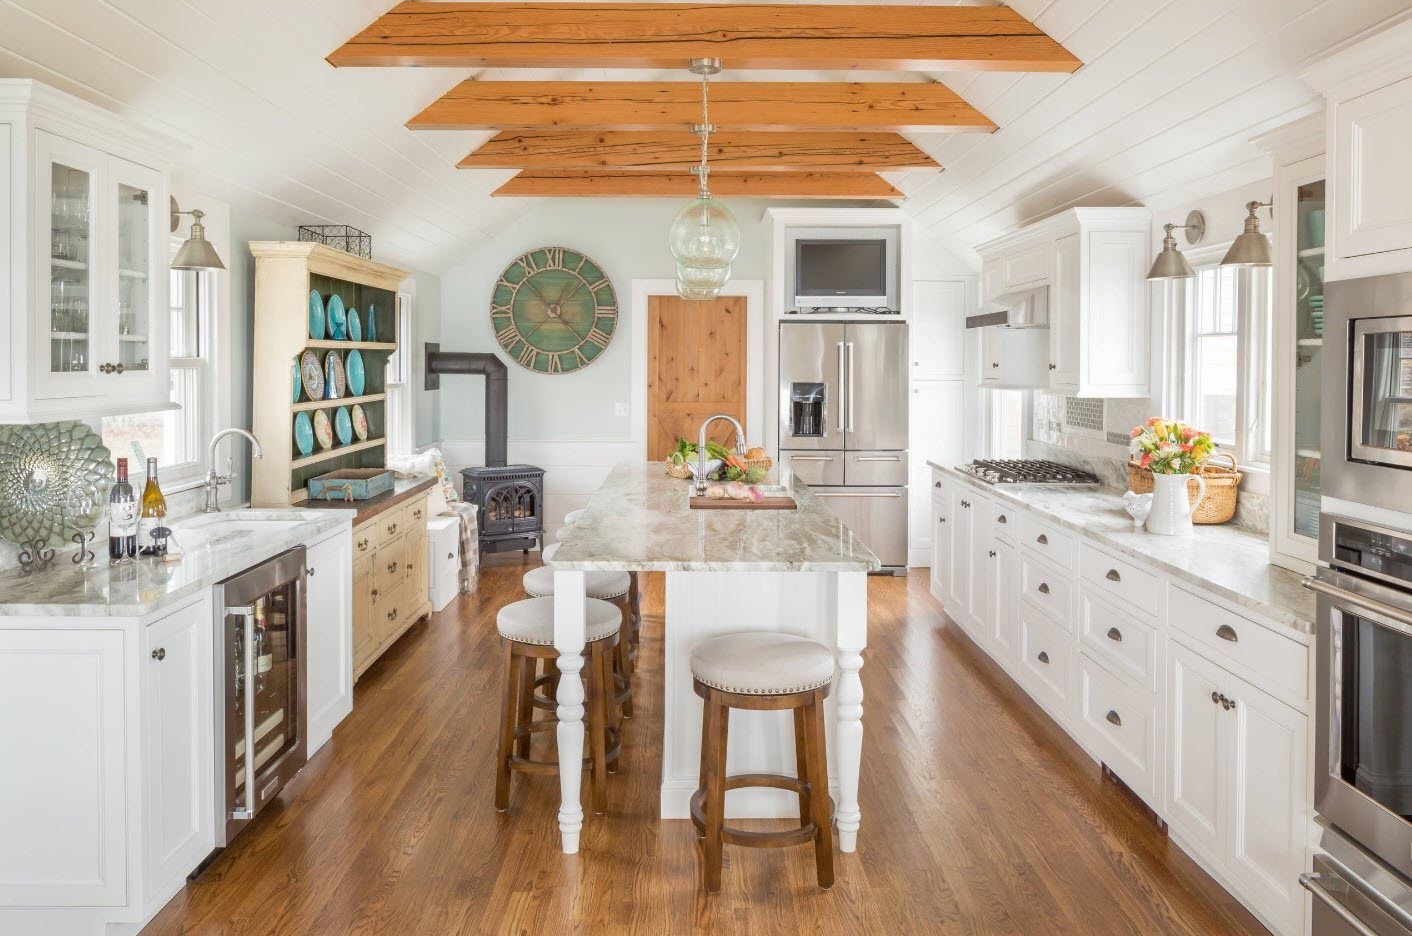 Open light wooden ceiling beams in the light colored classic